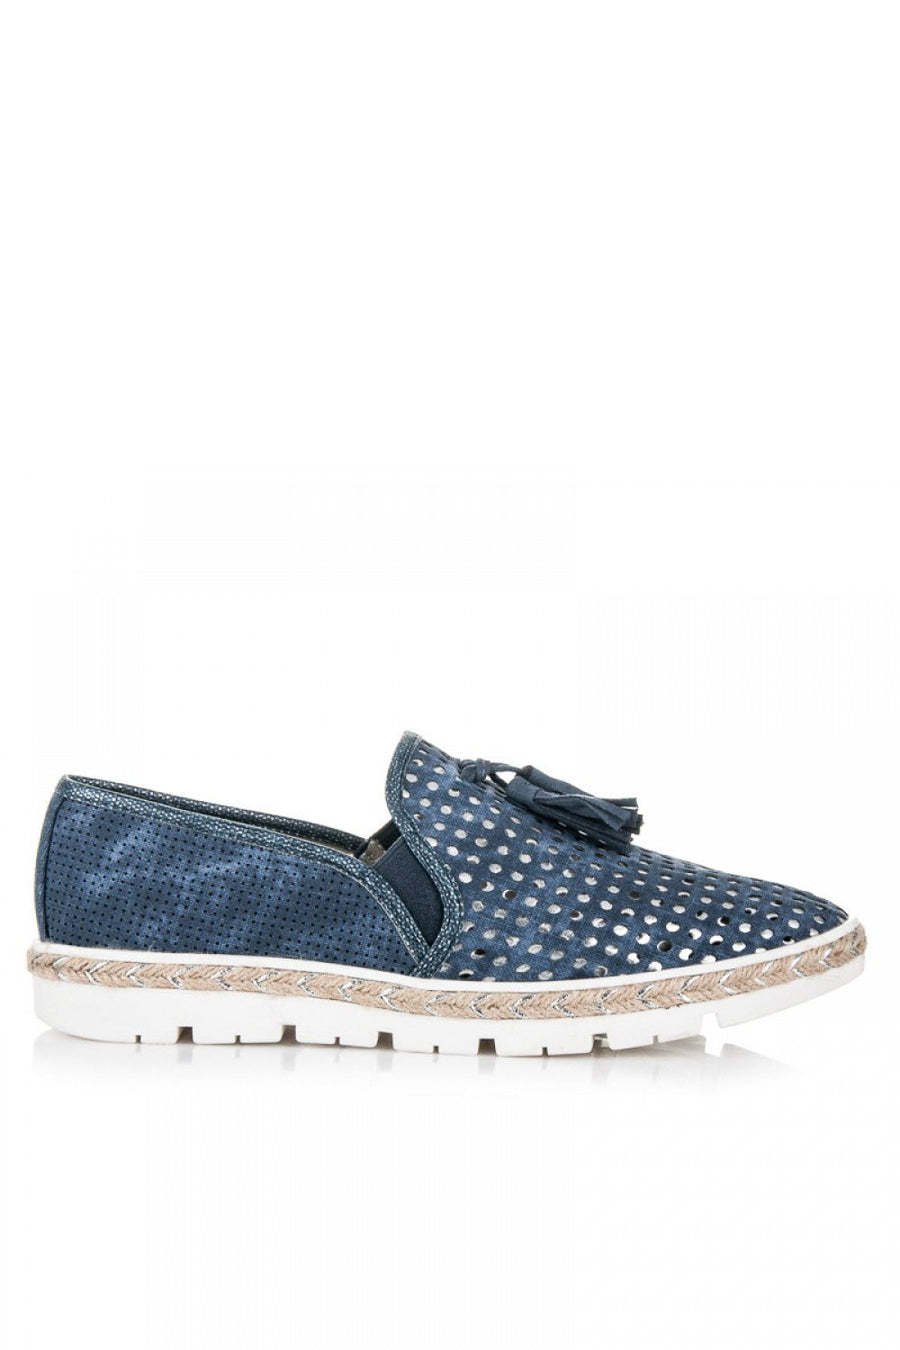 Espadrille 78525 Zoki-Women`s Athletic Shoes, Trainers, Sneakers-Zoki-Très Fancy